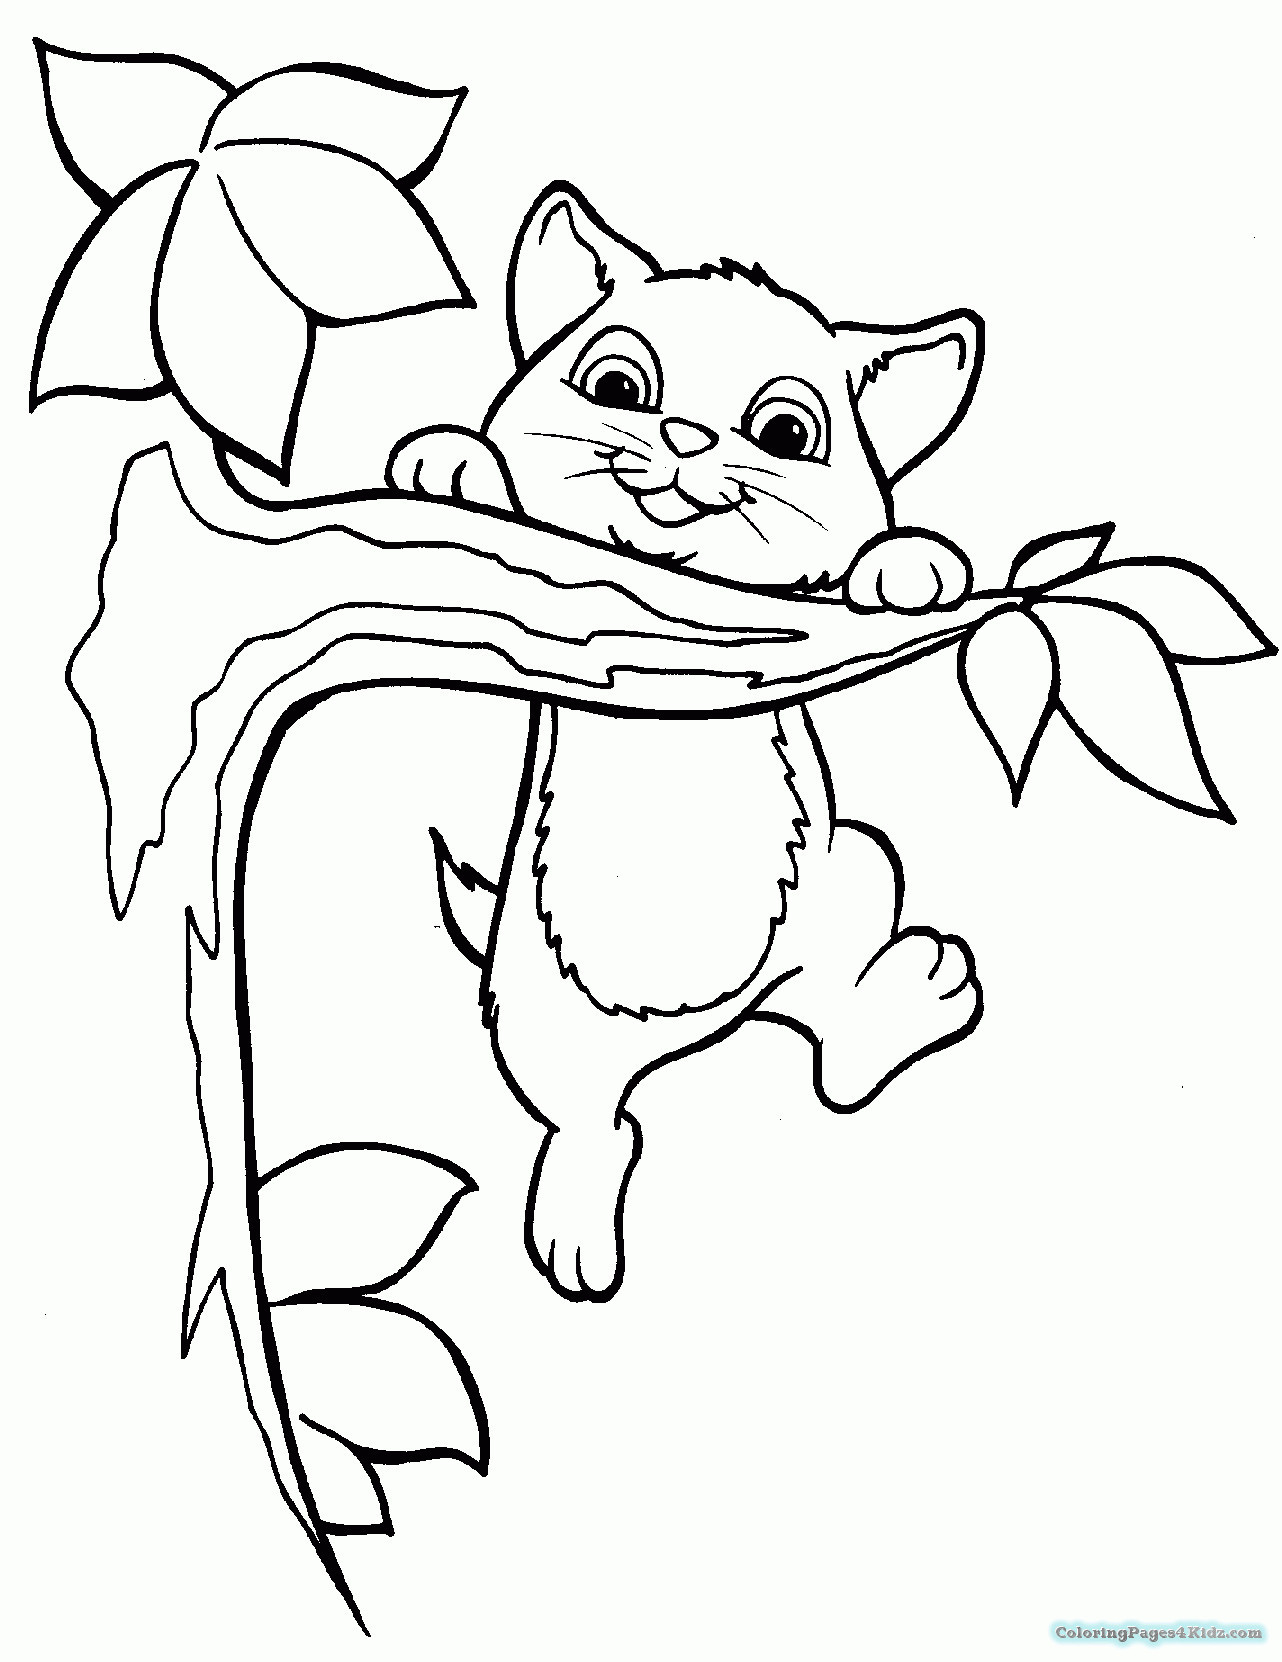 Christmas Kitten Coloring Pages With To Print Real Kittens Fresh